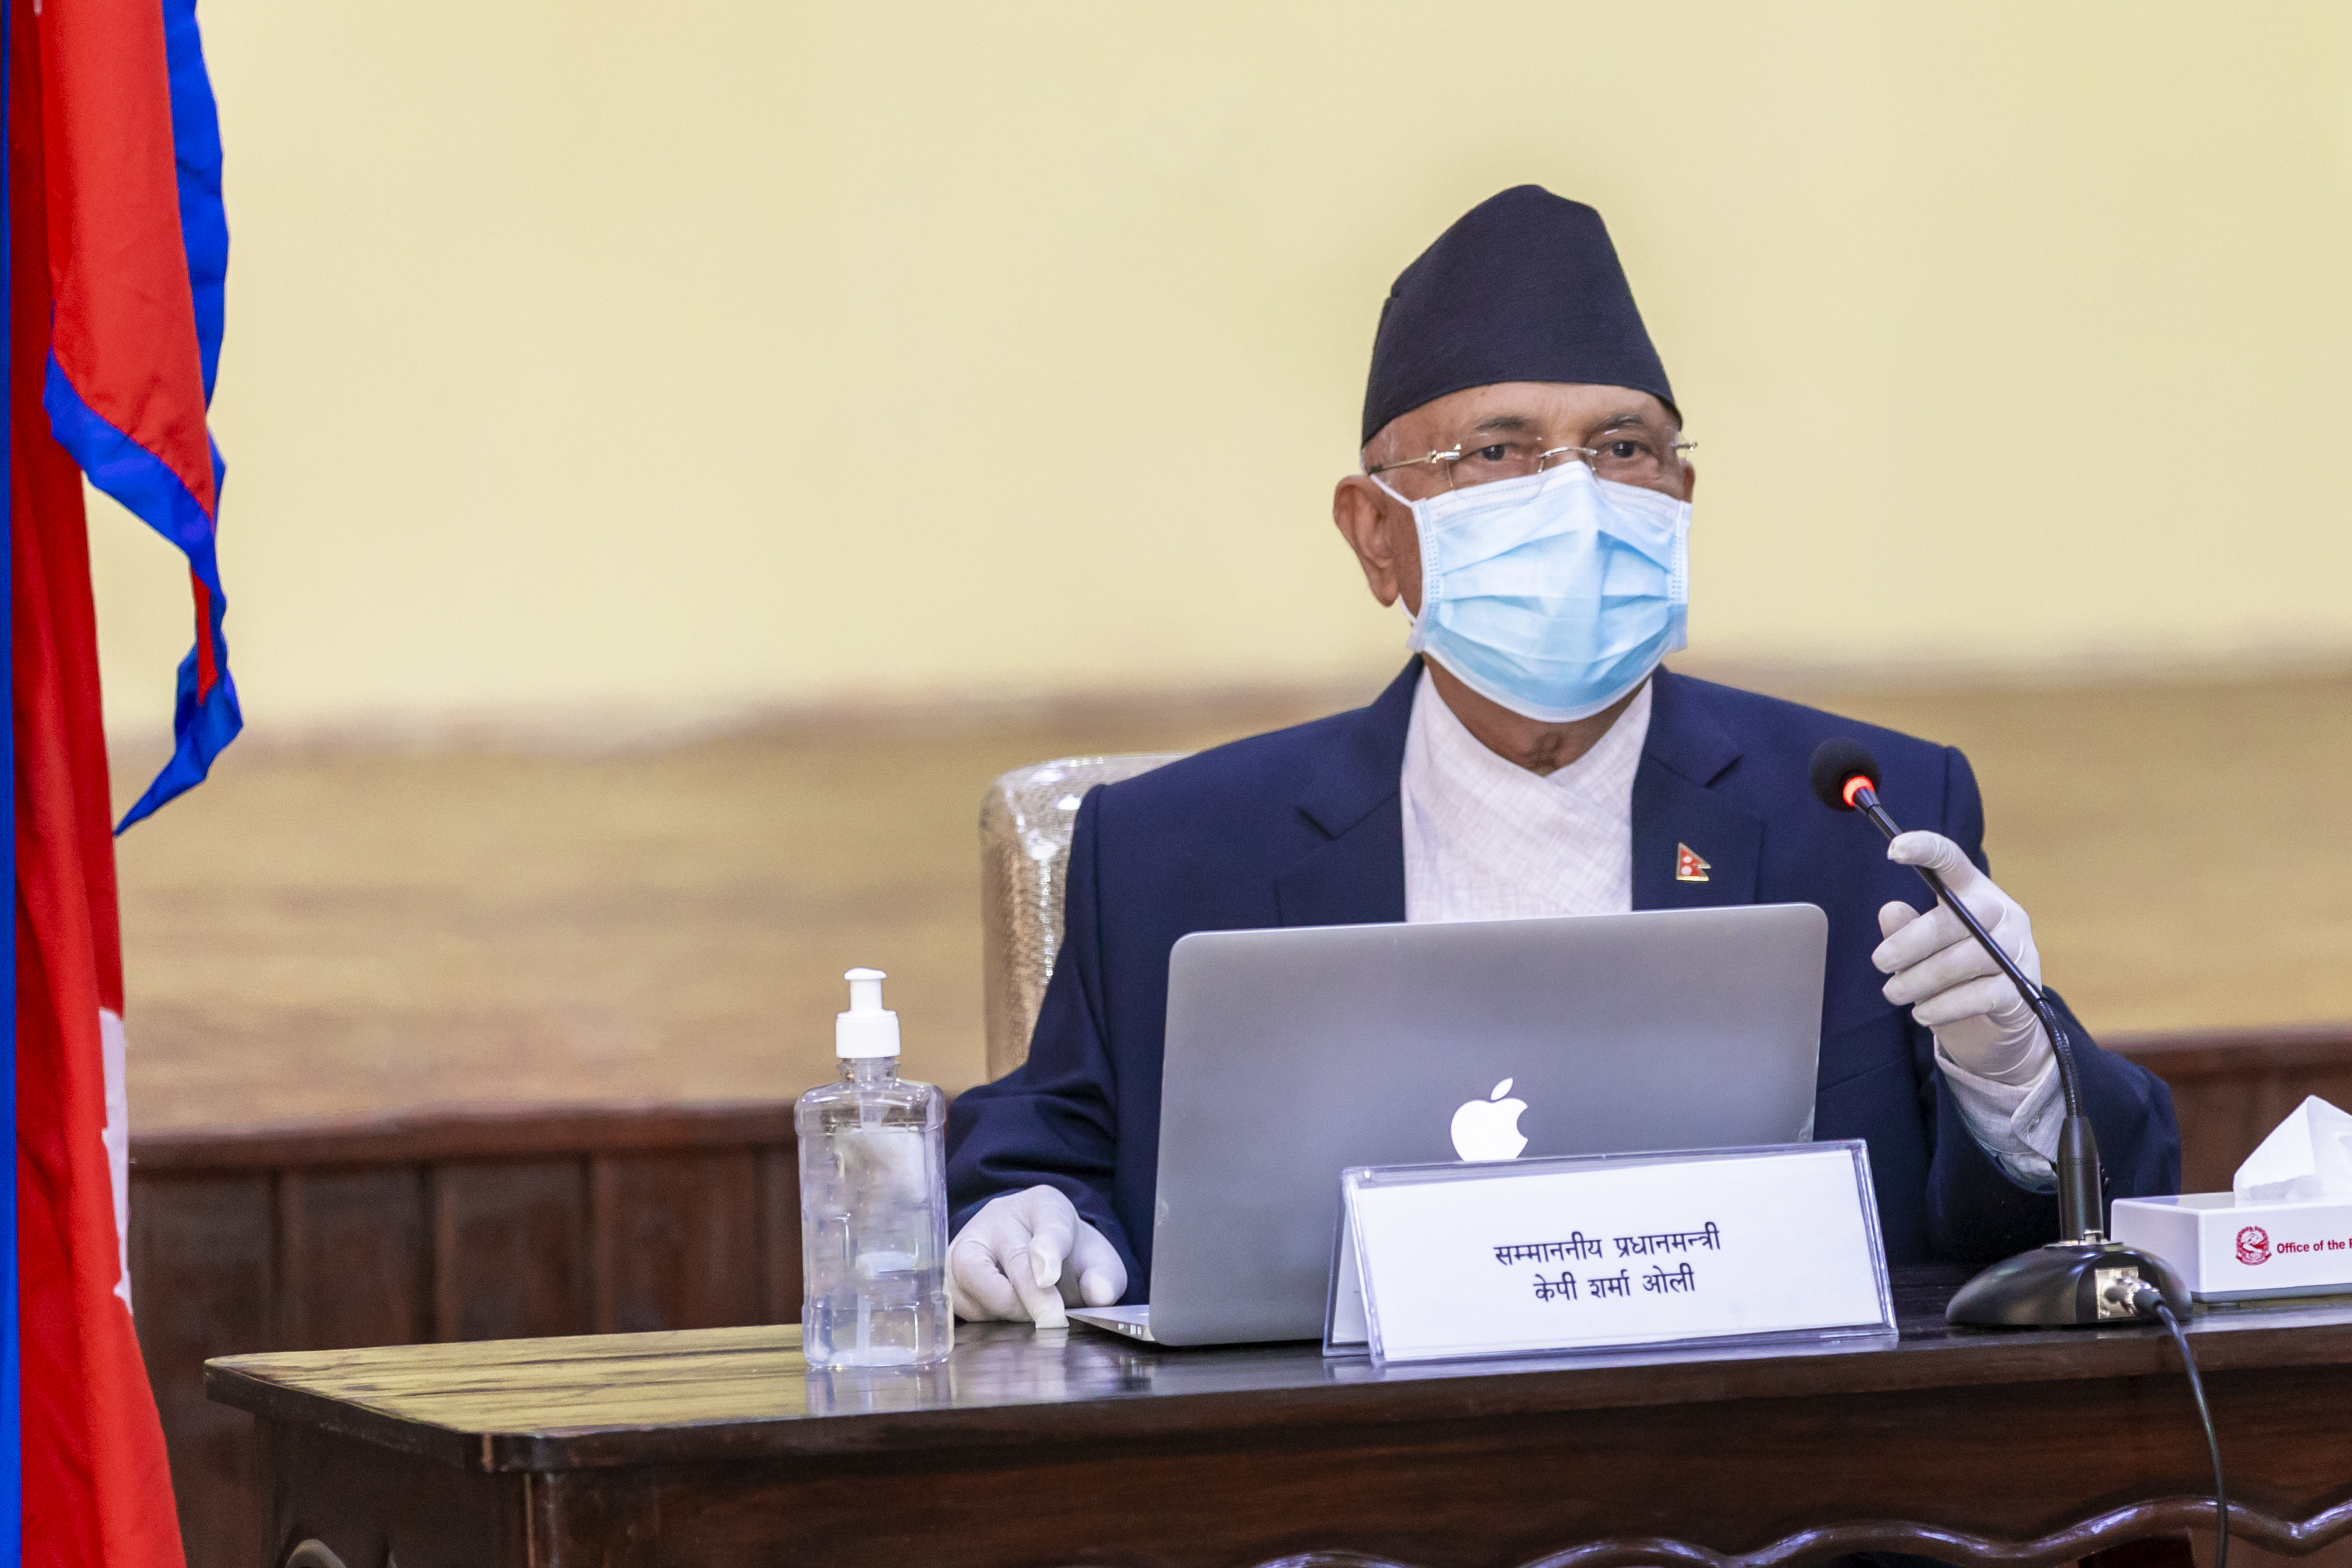 Prime Minister KP Sharma Oli addresses the Cabinet meeting held on Tuesday at the PM's official residence in Baluwatar. Photo courtesy: Rajan Kafle